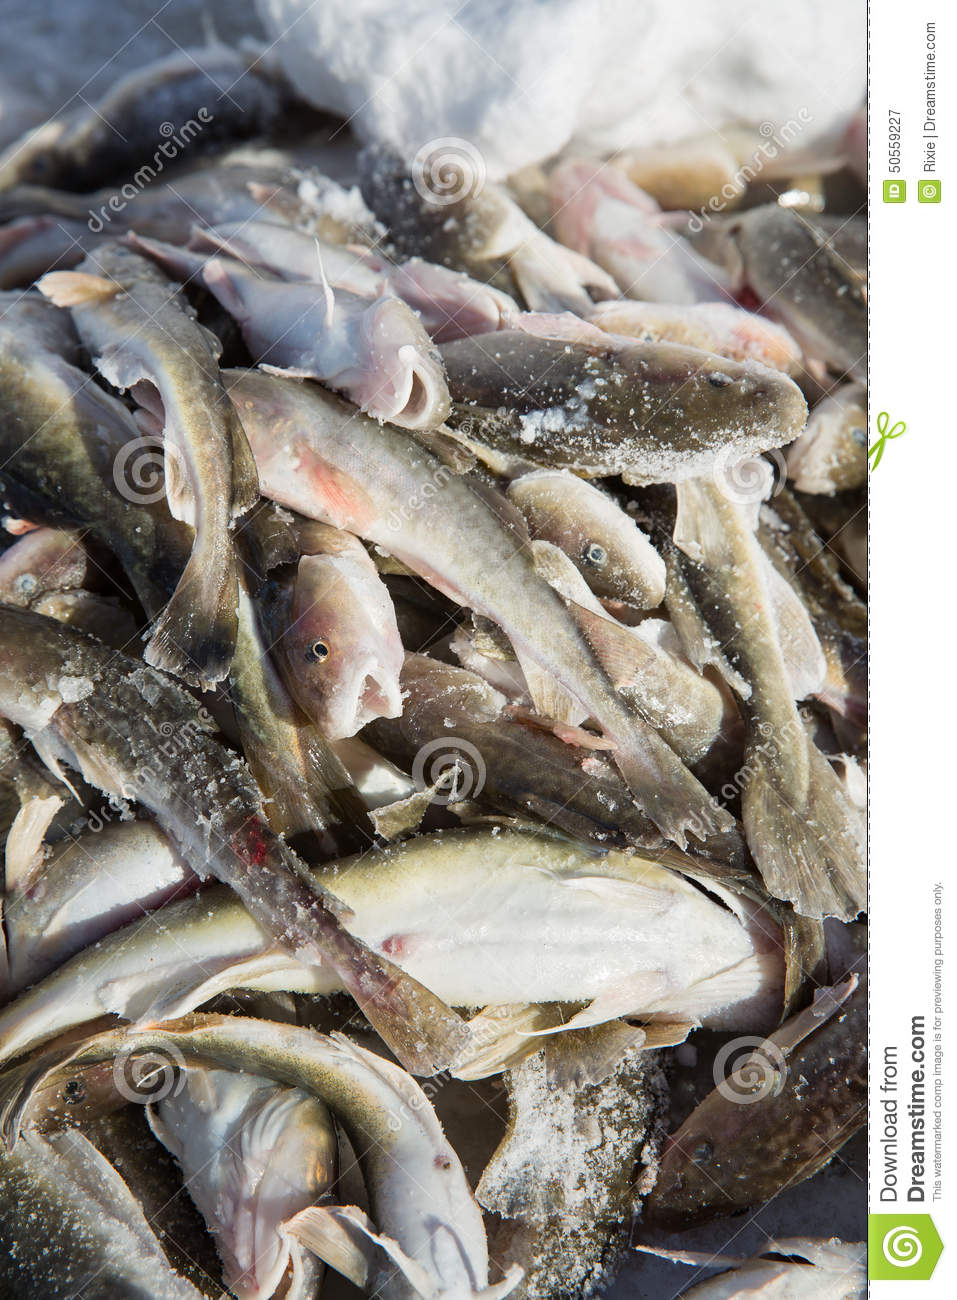 Ice fishing catch stock image image of seafood blood for Nys fishing license prices